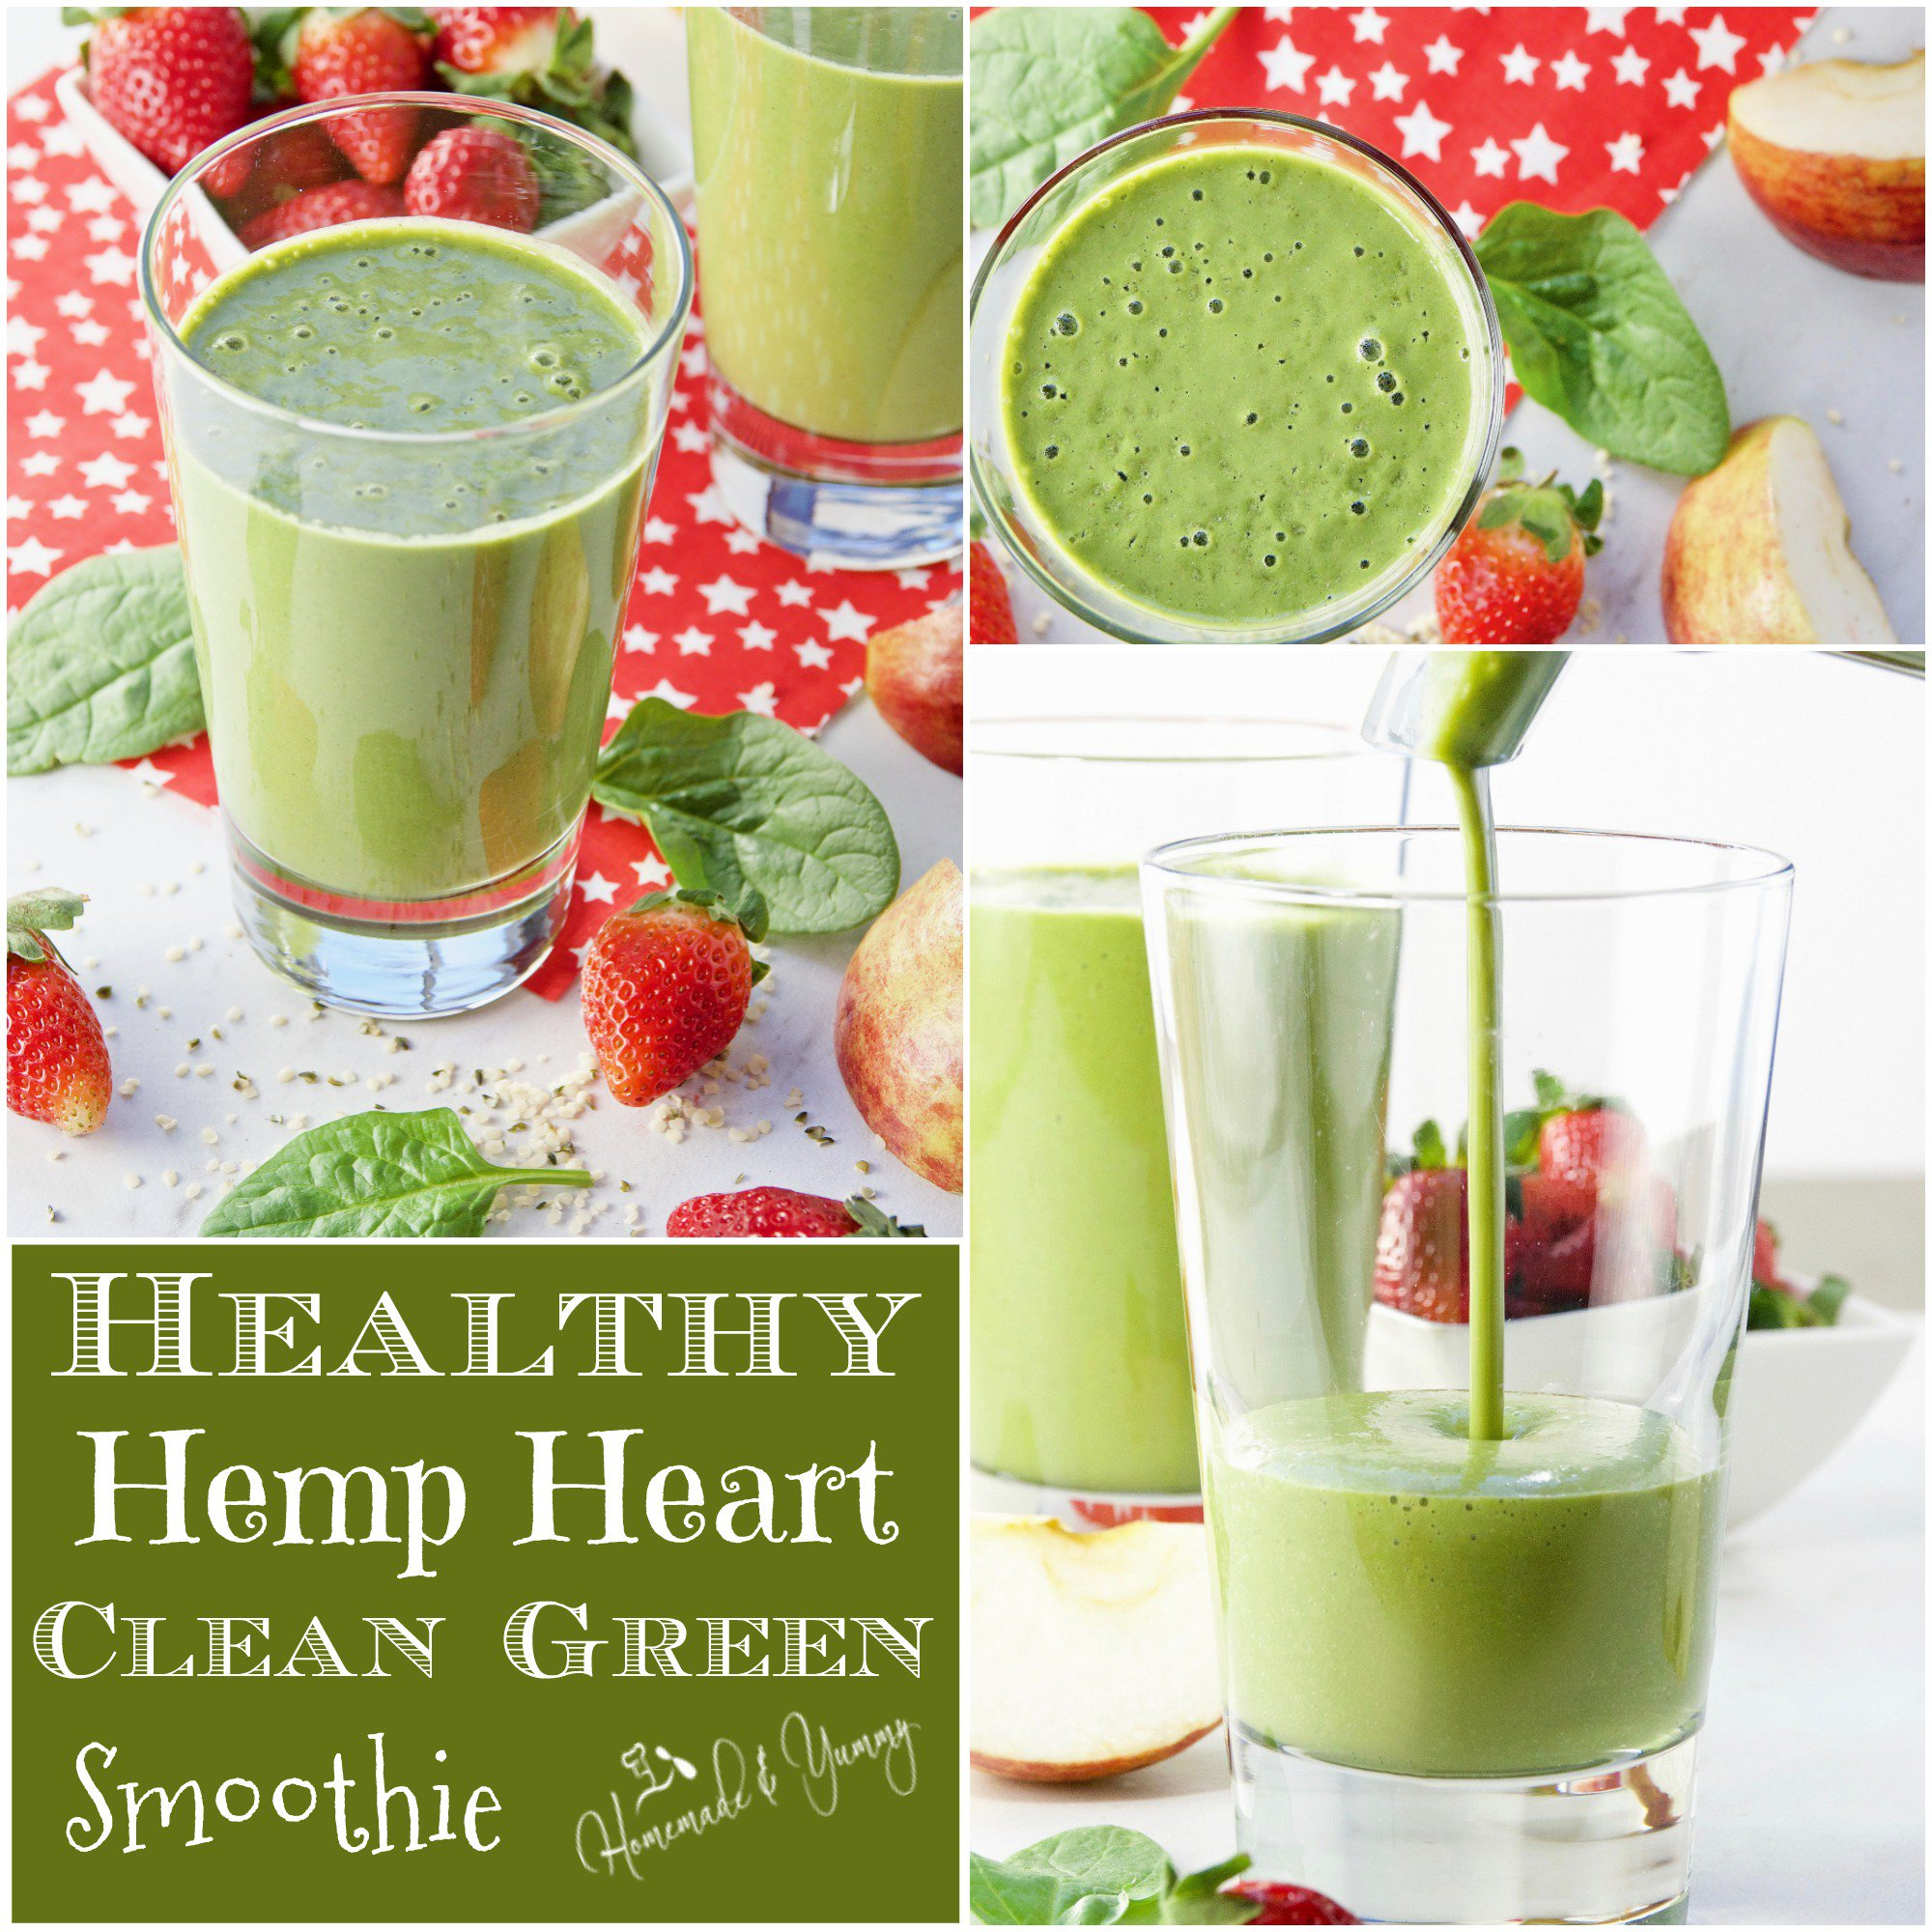 Gloria On Twitter Healthy Eating For 2018 Easy As 1 2 3 Healthy Hemp Heart Clean Green Smoothie Https T Co P8b5dboj1c